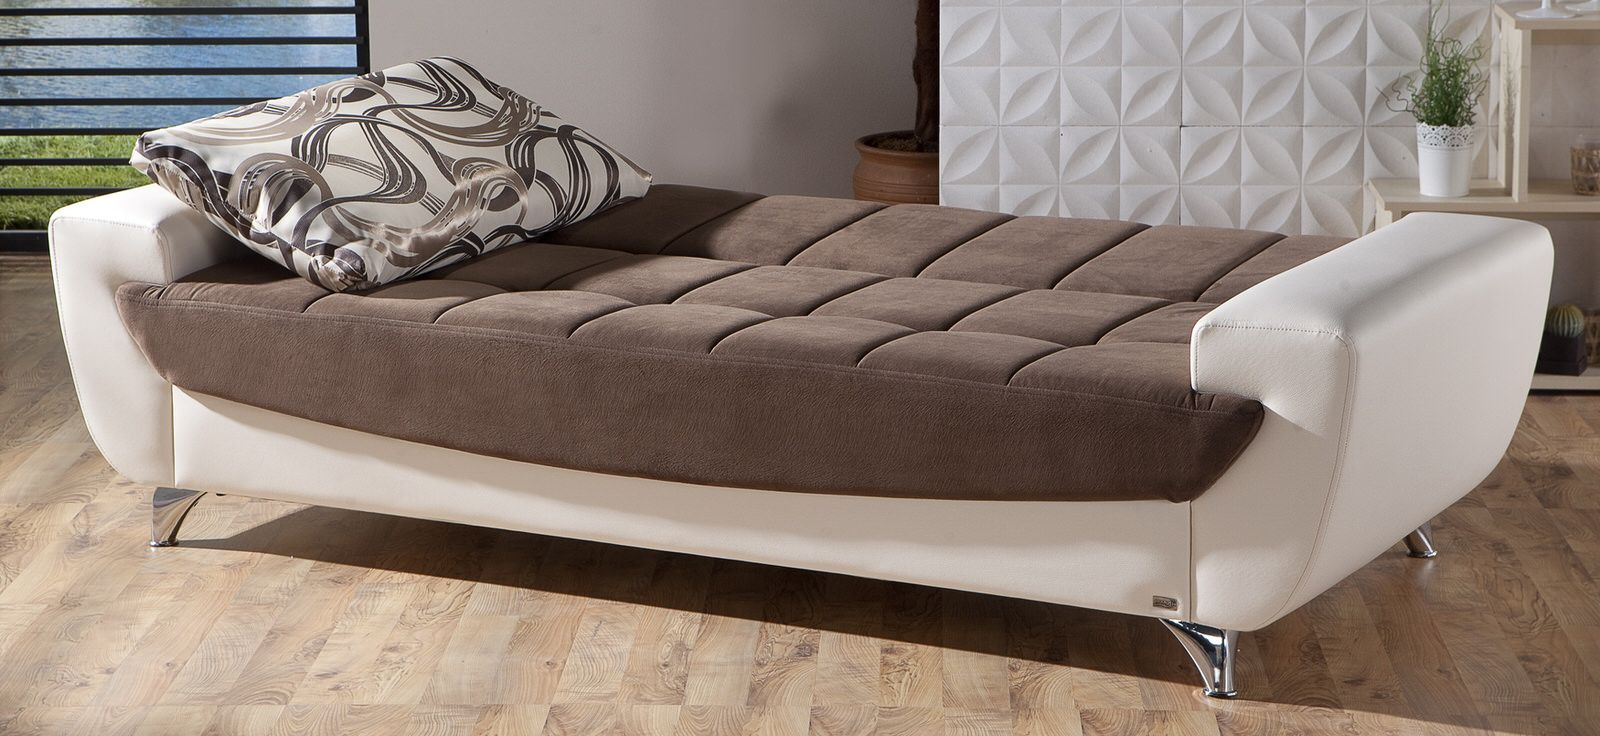 Pin by Nikhat Fatima on Future house Sofa bed uk, Sofa